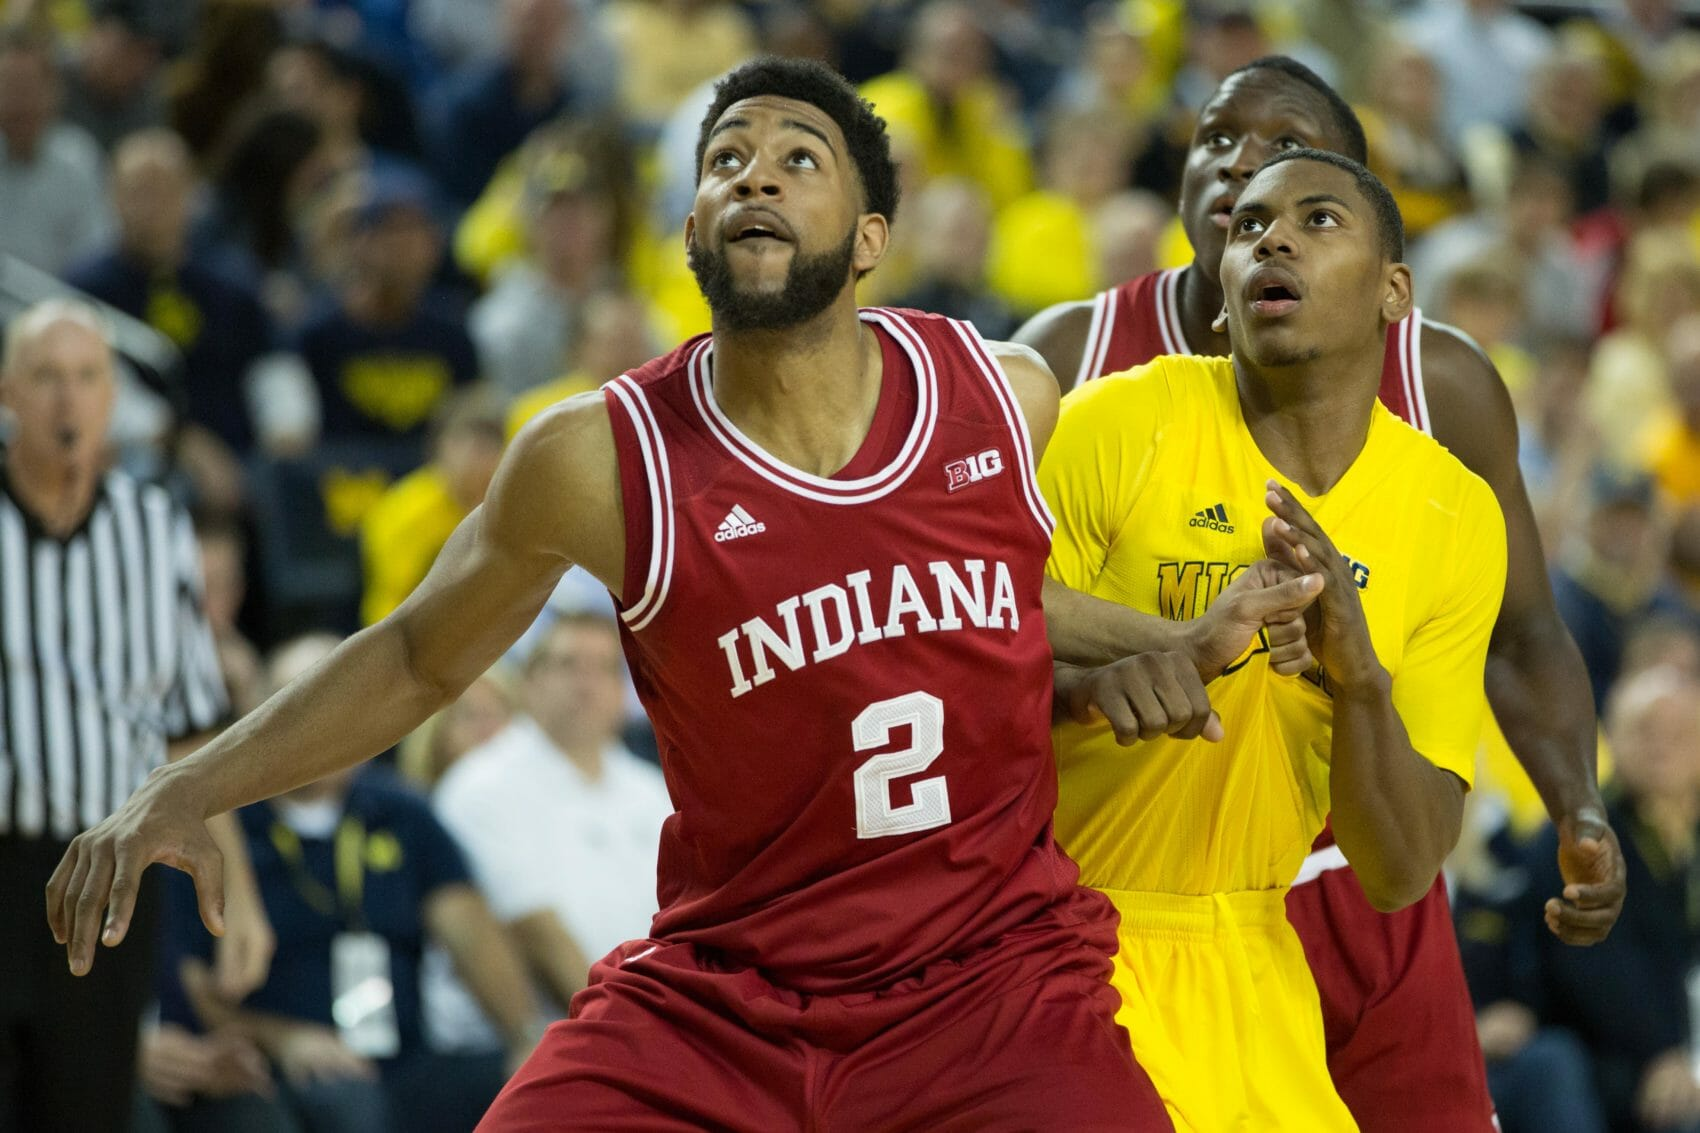 Indiana 72, Michigan 71-21